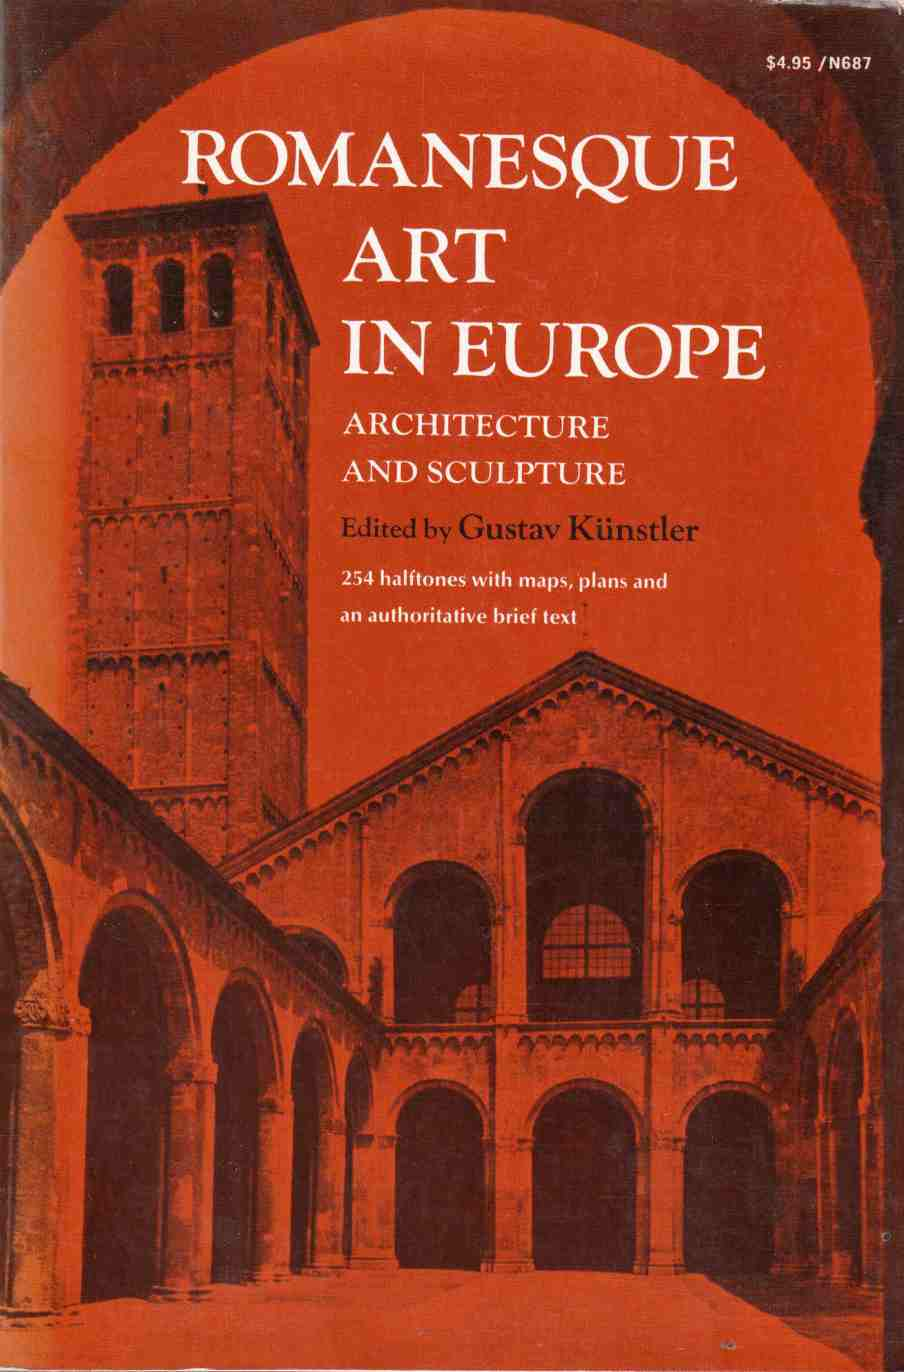 Image for Romanesque Art in Europe Architecture and Sculpture